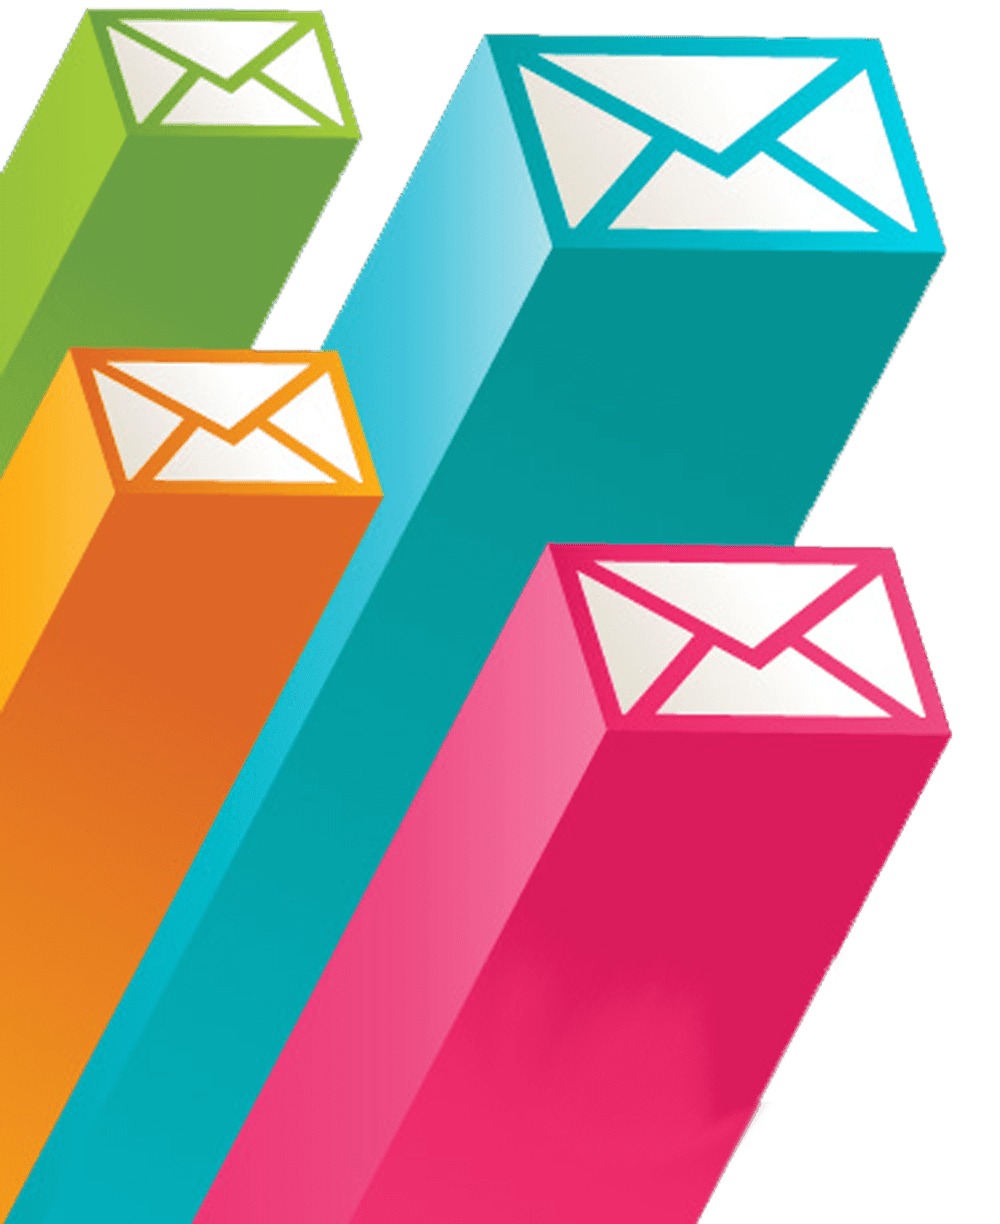 HTMTN-Email-Deliverability-1000x1224